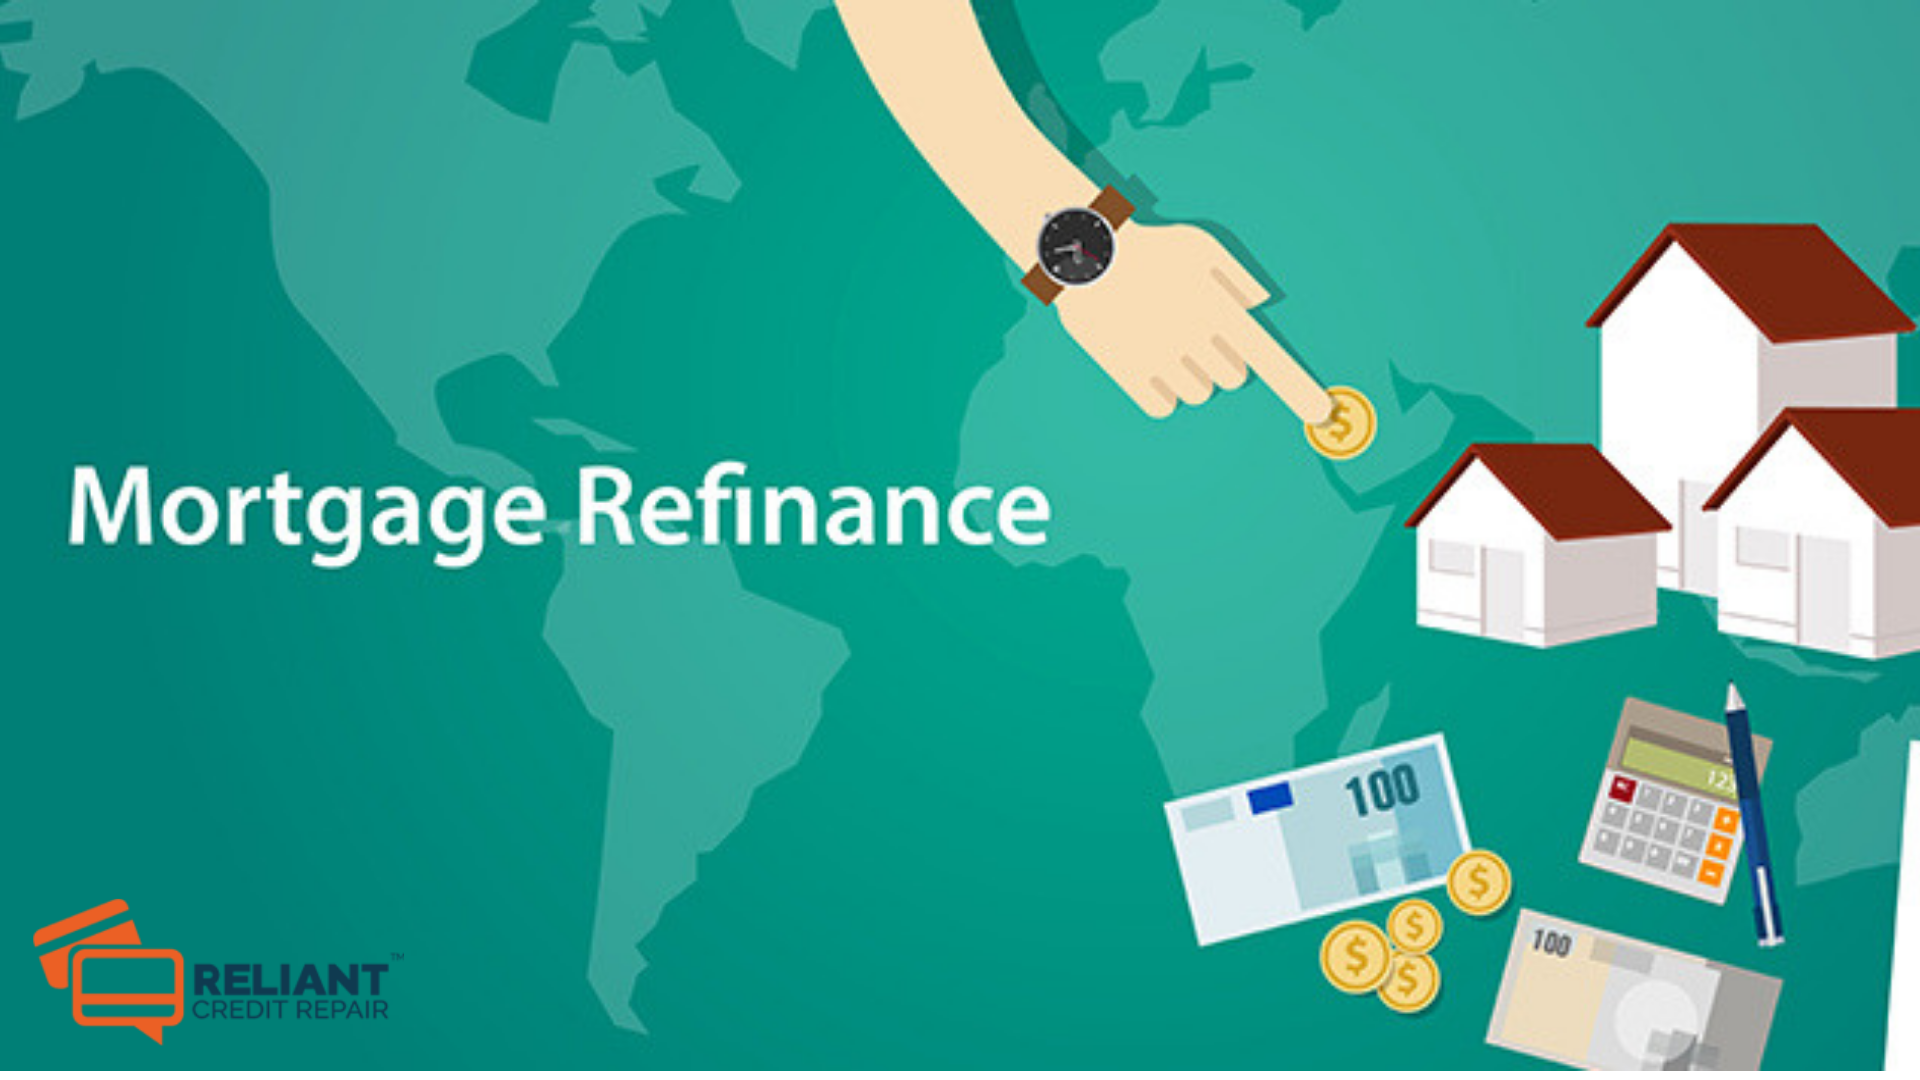 How to refinance your home when you have bad credit